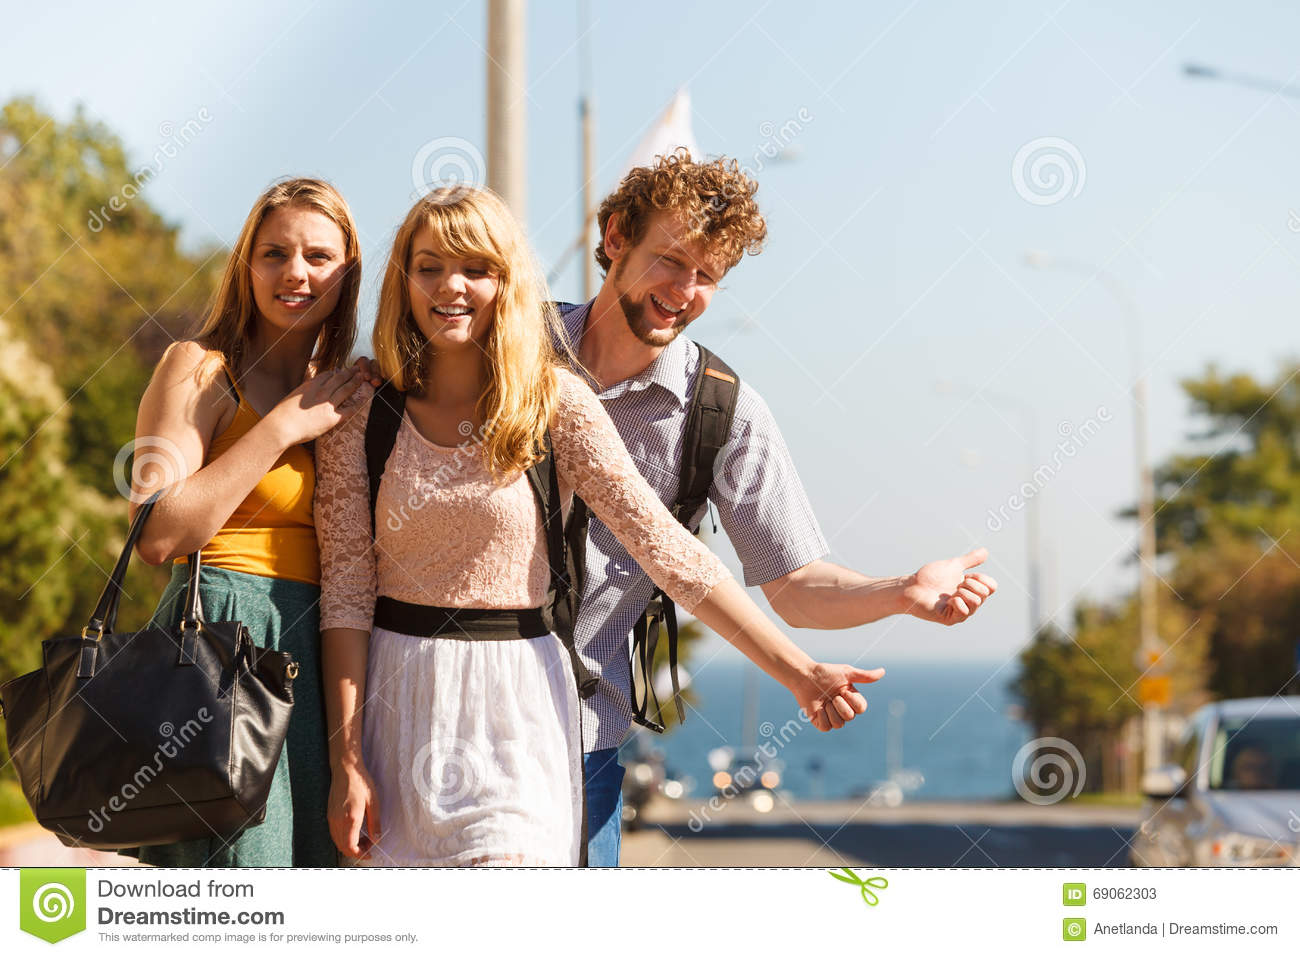 People friends hitchhiking on summer vacation.